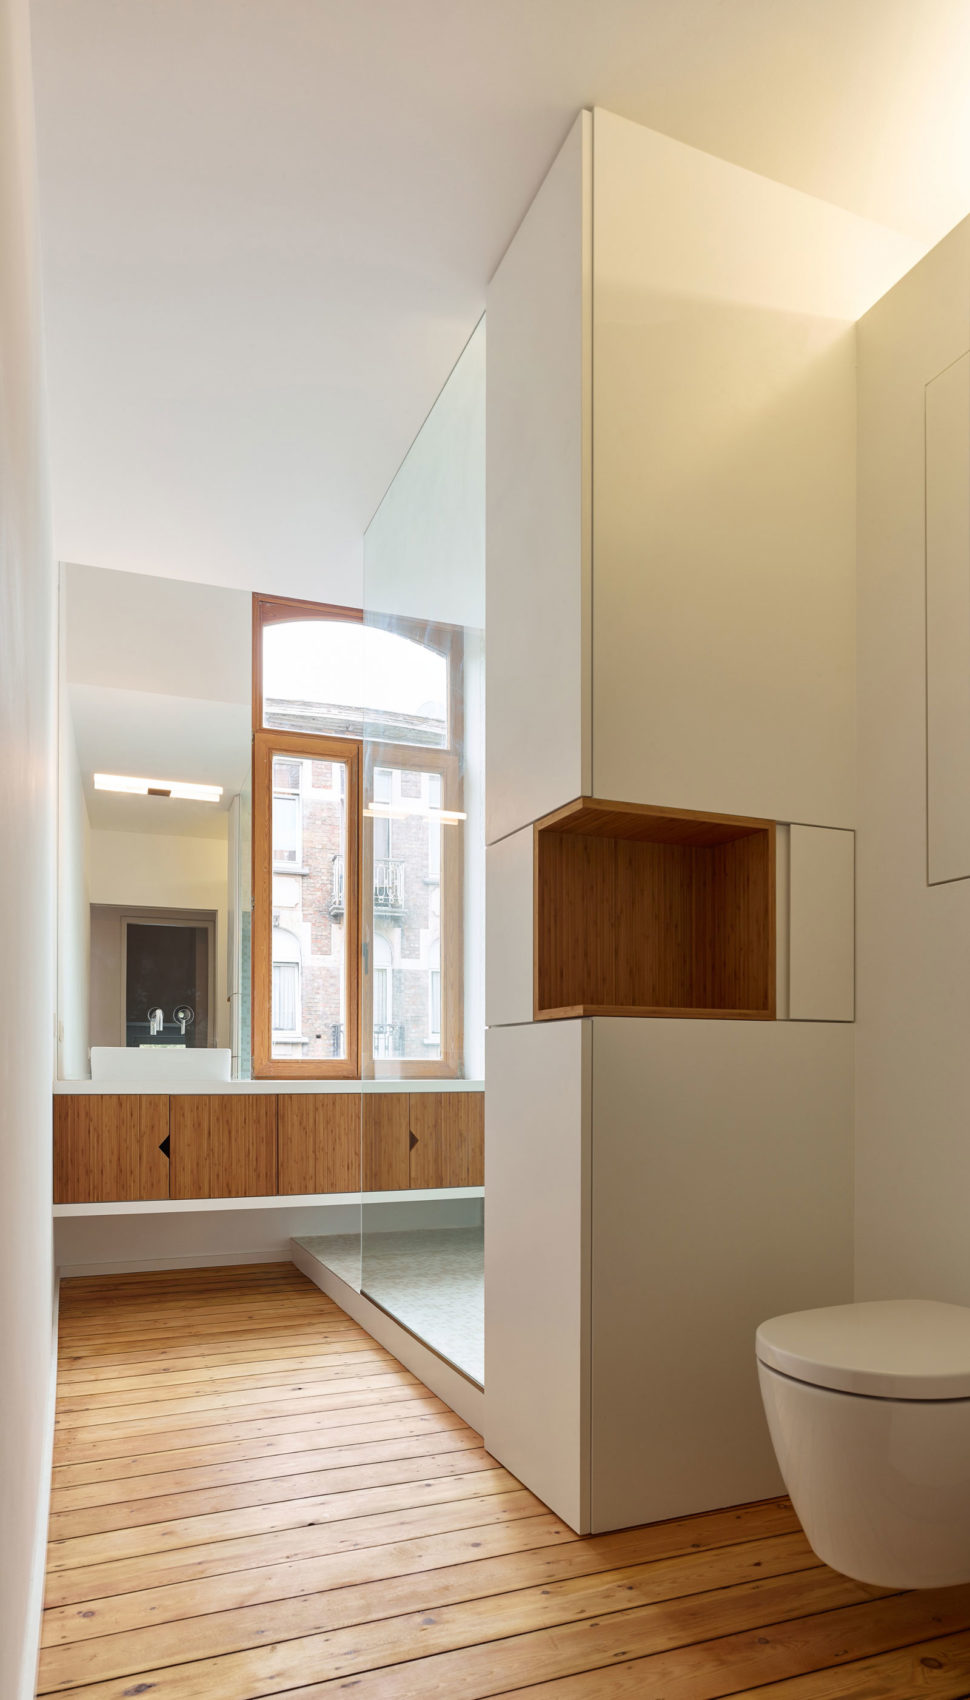 Home in Schaerbeek by Martens/Brunet Architects (22)